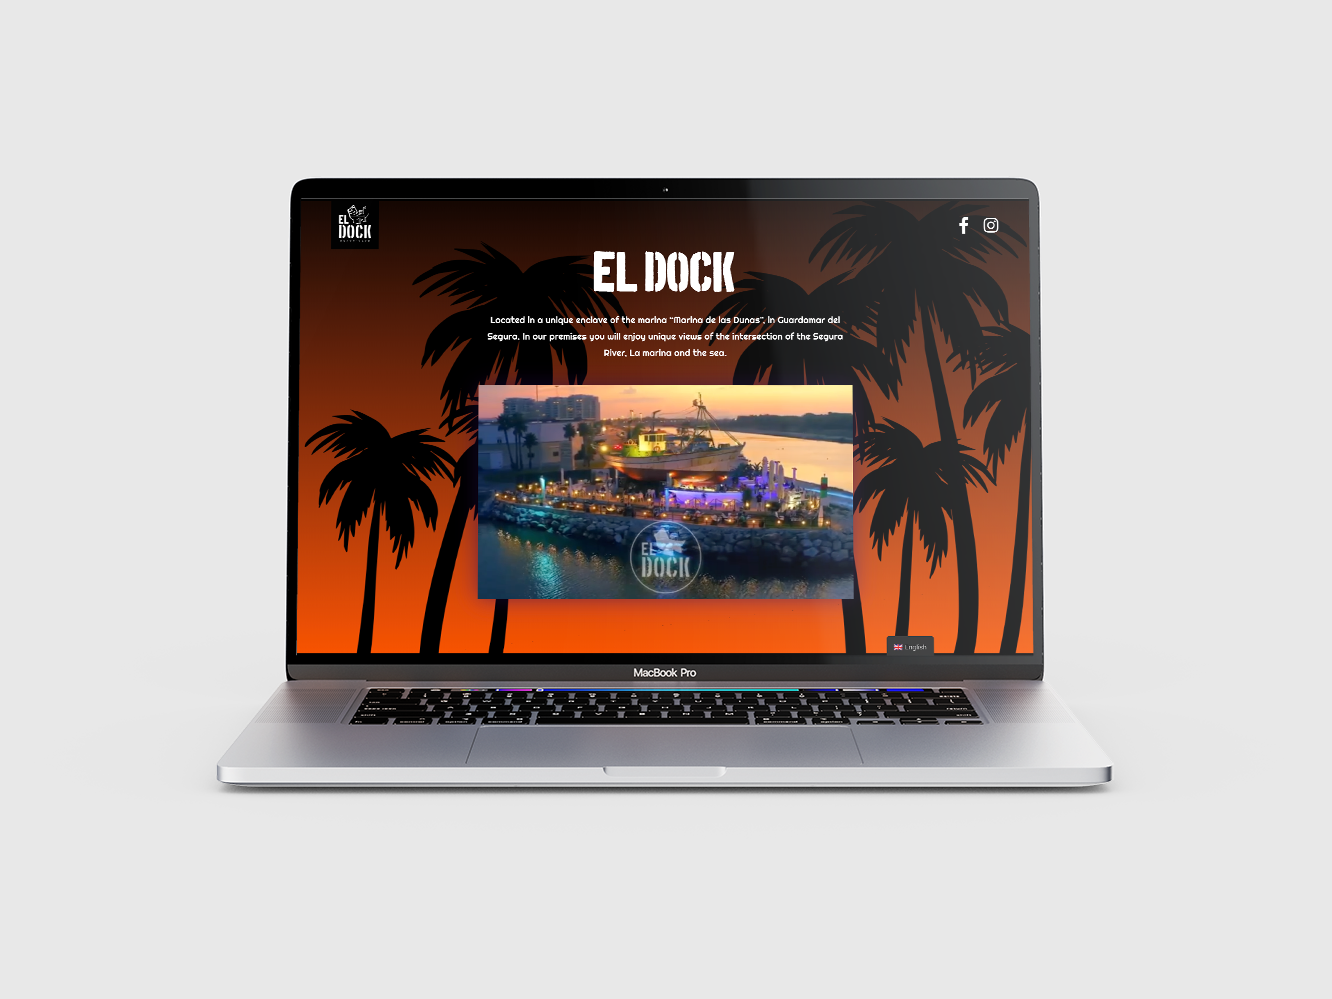 Digital Marketing Services: El Dock